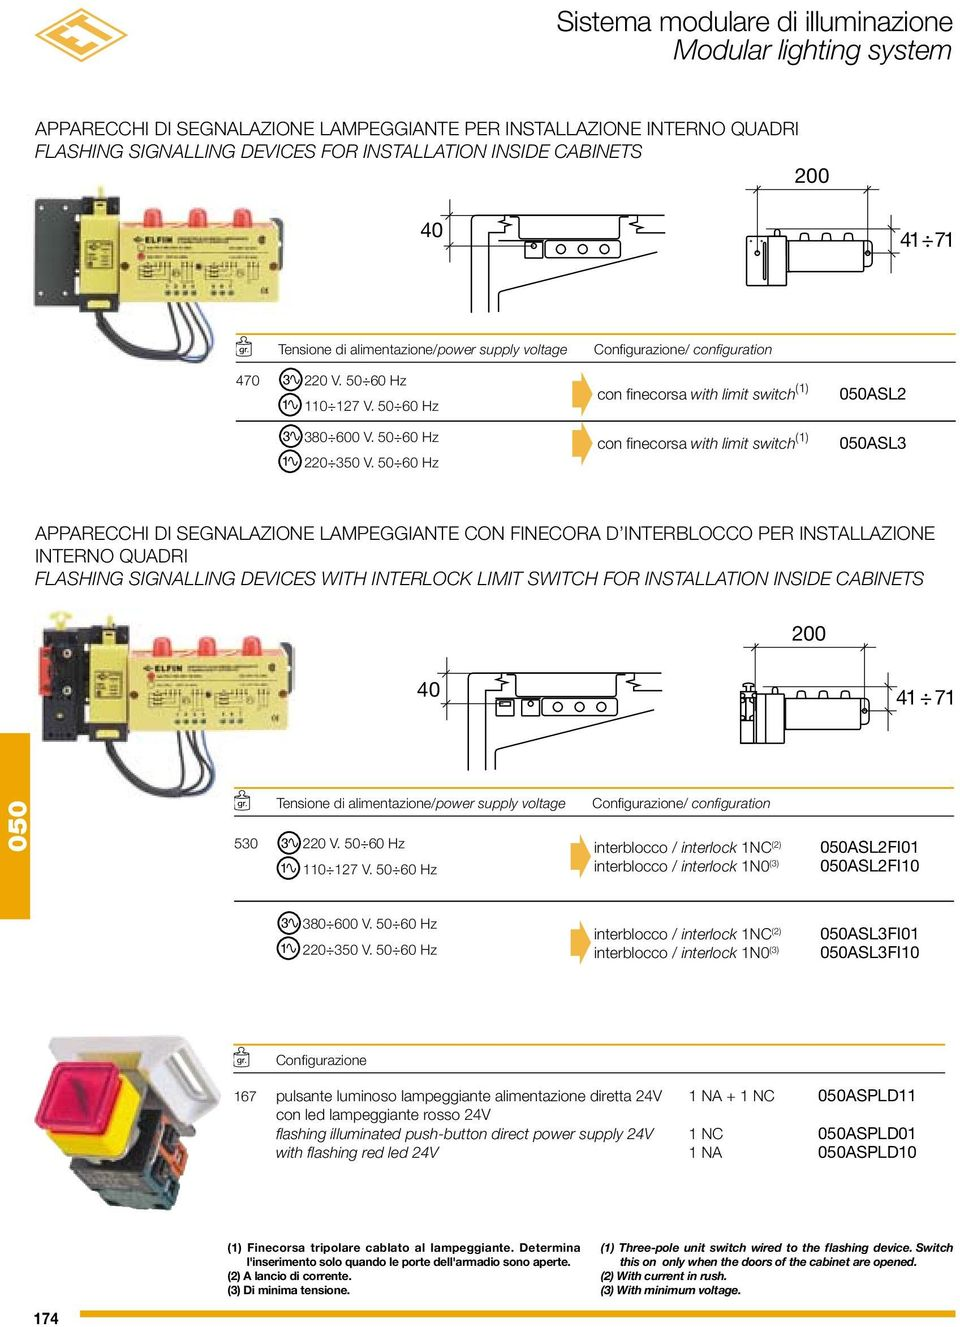 0 0 Hz Configurazione/ configuration con finecorsa with limit switch () con finecorsa with limit switch () AS AS APPARECCHI DI SEGNAAZIONE AMPEGGIANTE CON FINECORA D INTERBOCCO PER INSTAAZIONE